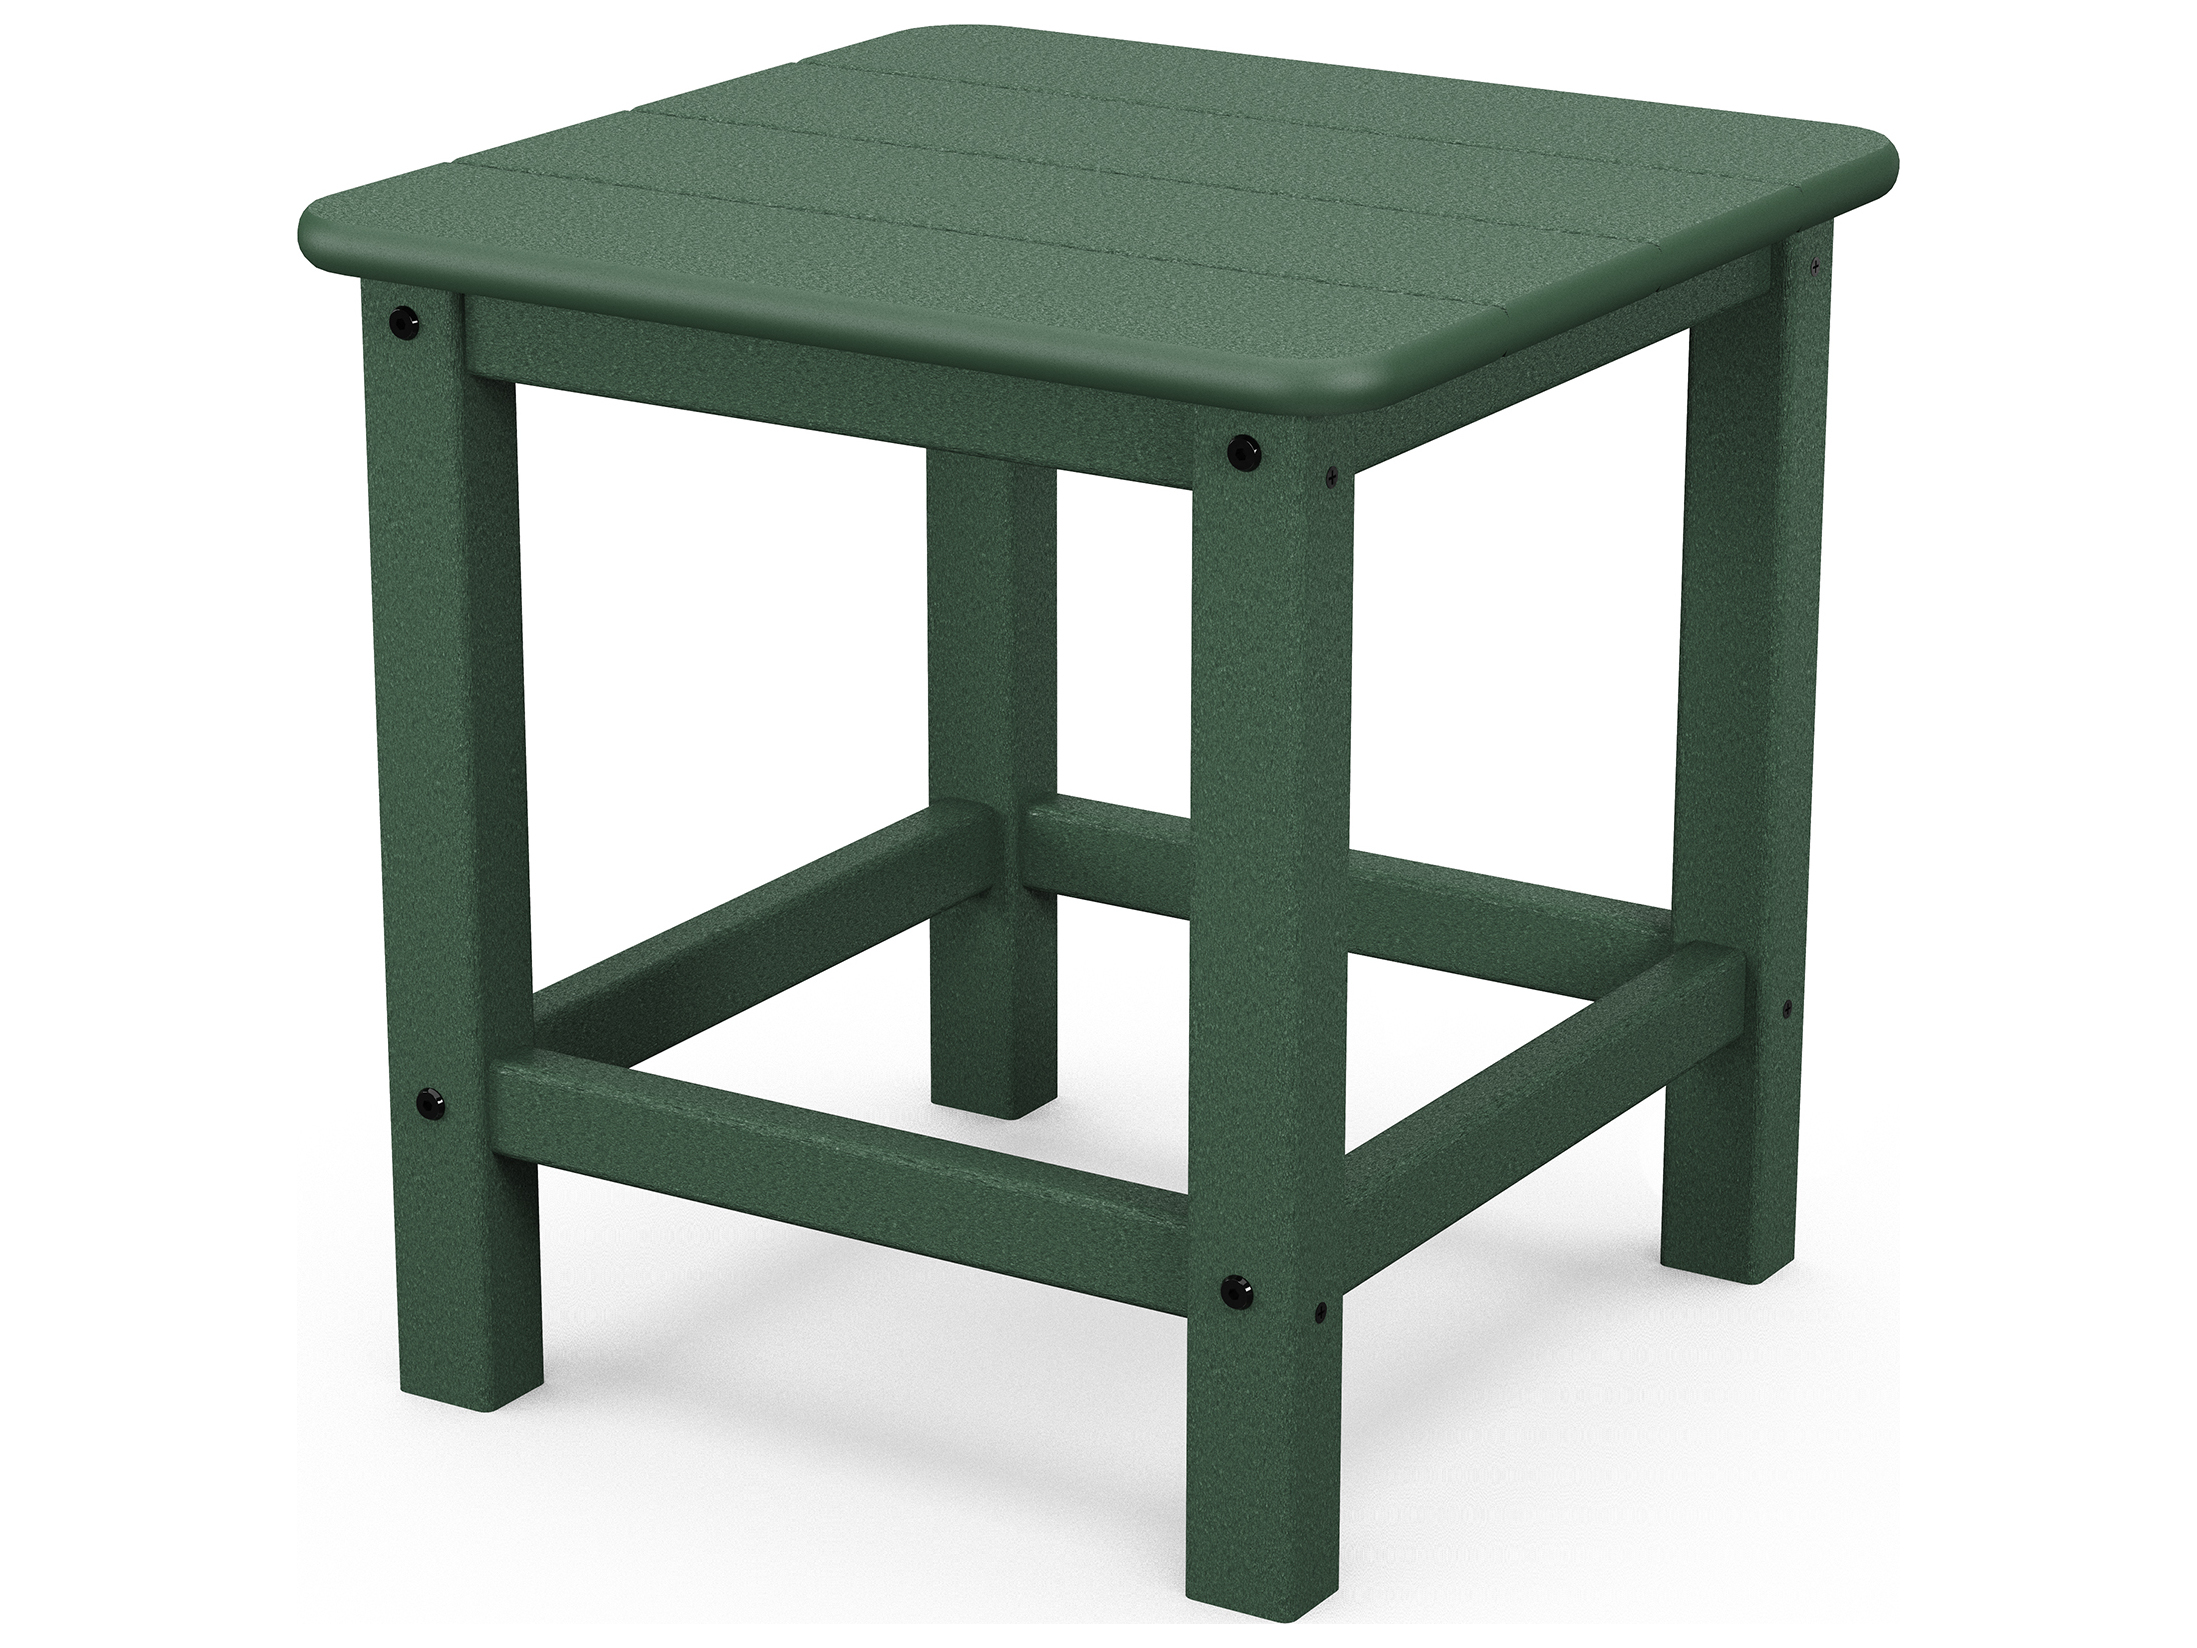 POLYWOOD® Seashell Recycled Plastic Adirondack 18 Square End Table